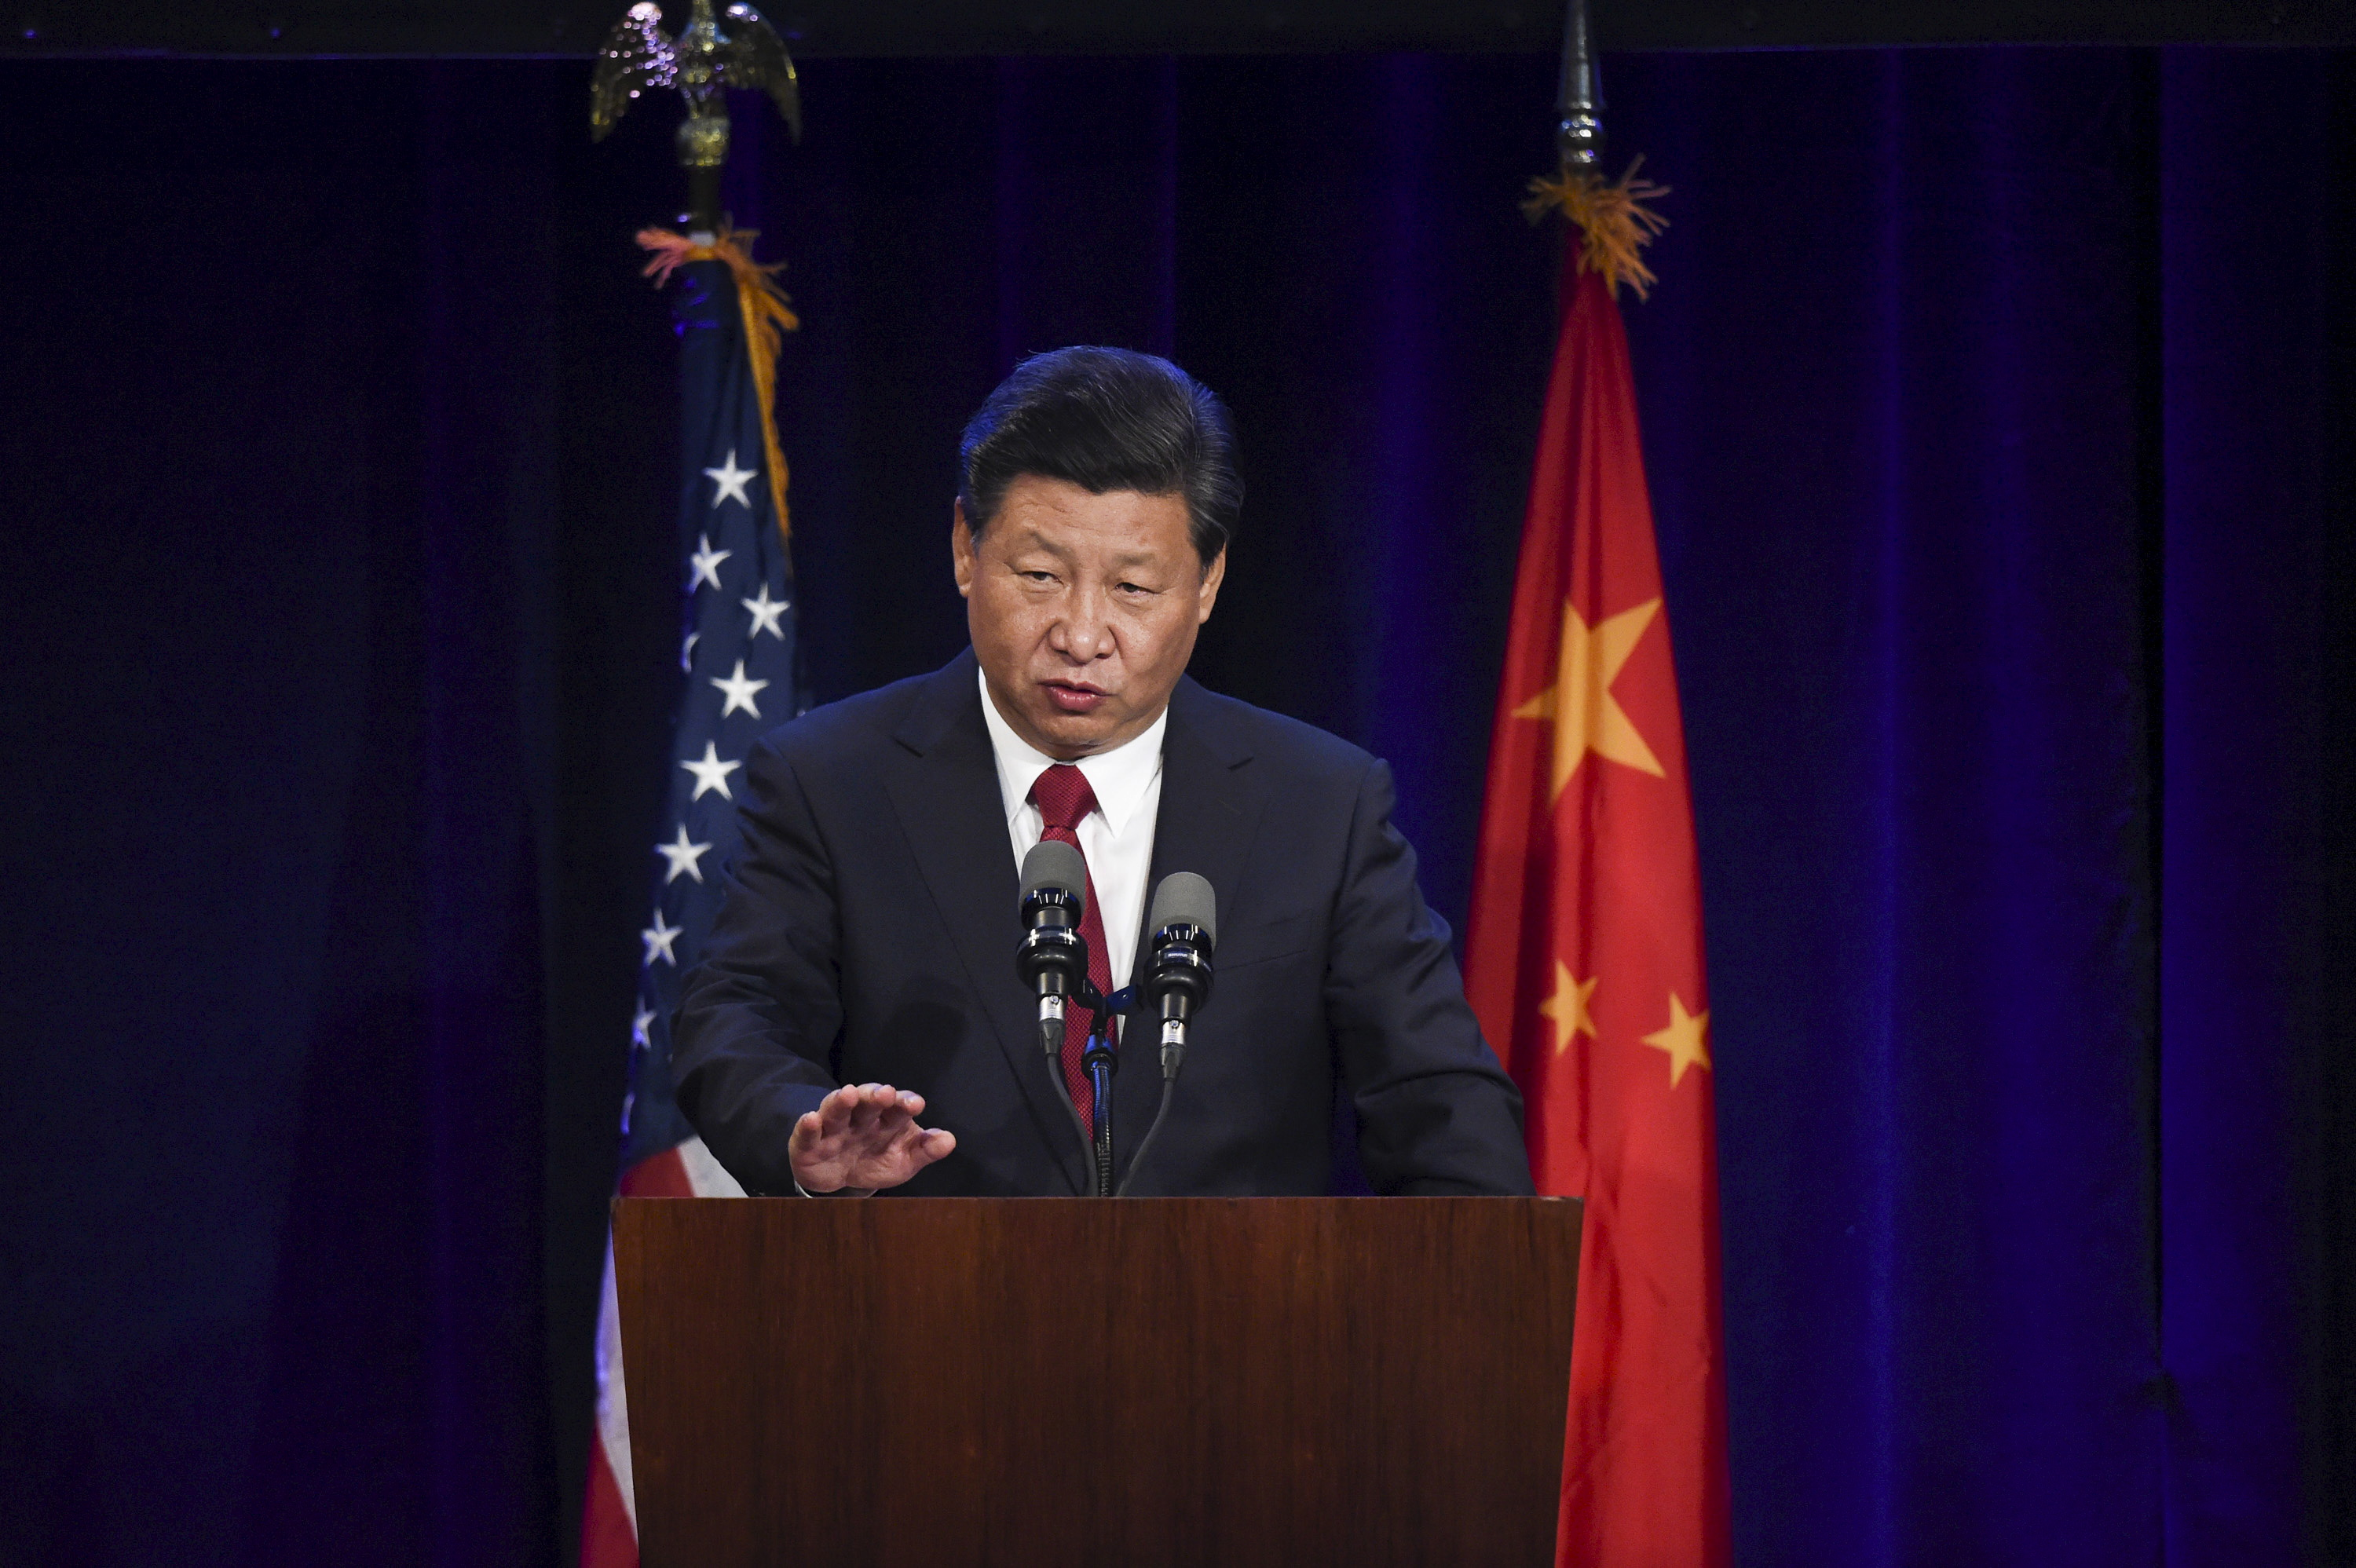 Chinese President Xi Jinping delivers a policy speech to Chinese and United States CEOs during a dinner reception in Seattle, Washington Sept. 22, 2015